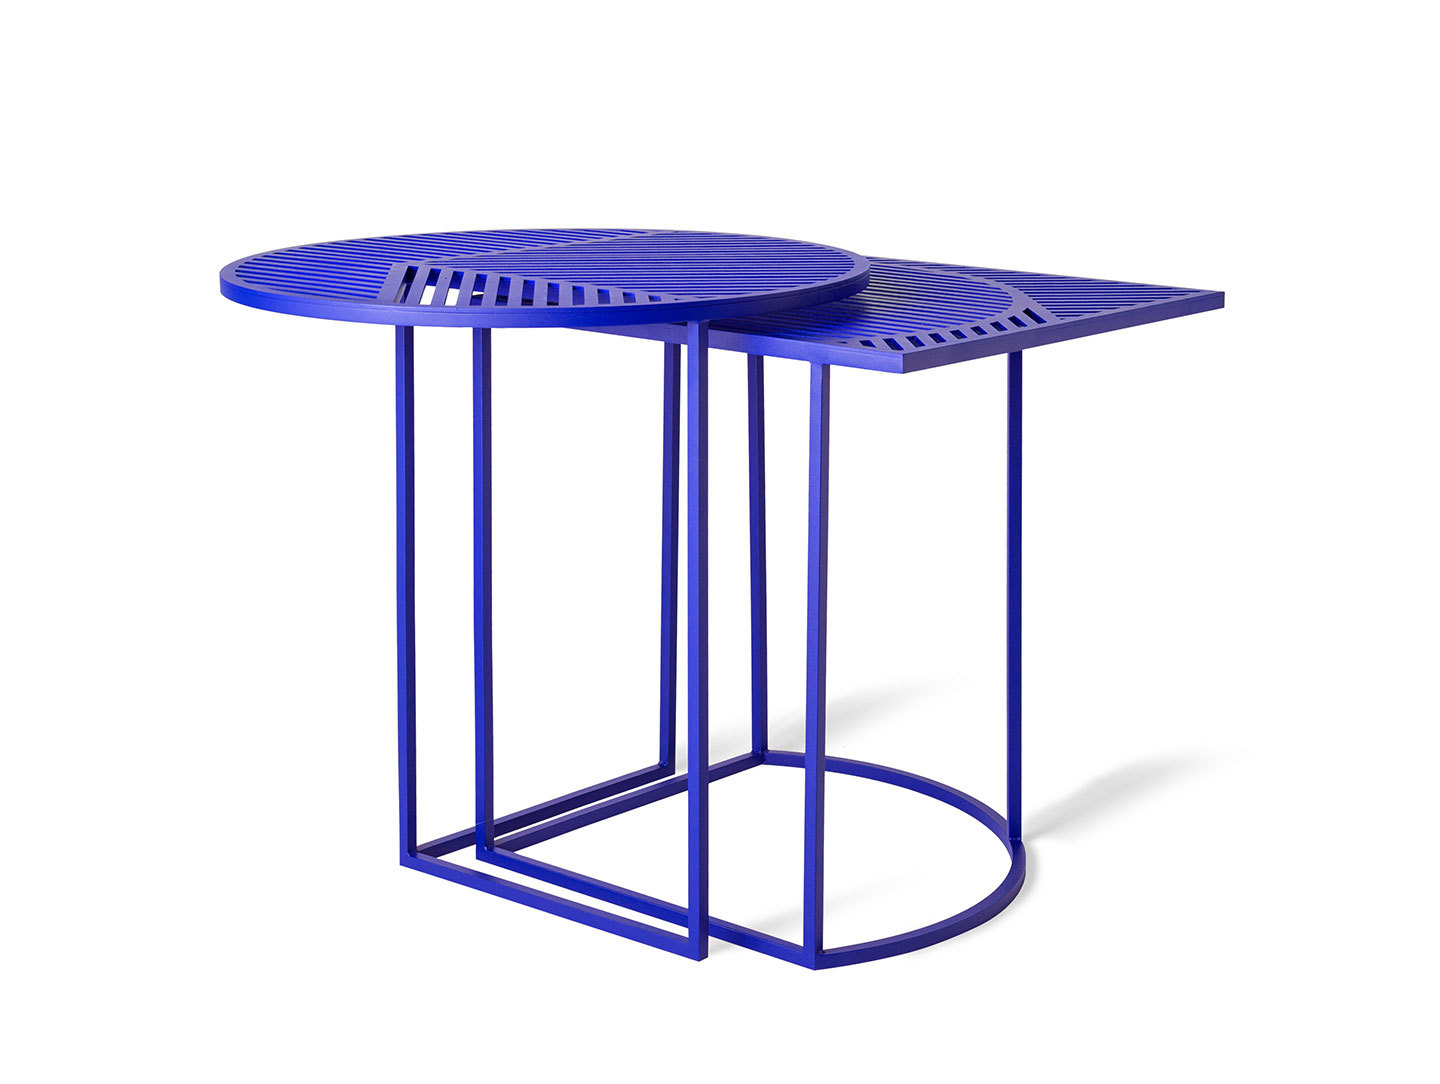 Petite Friture Iso Side Tables Blue Pool